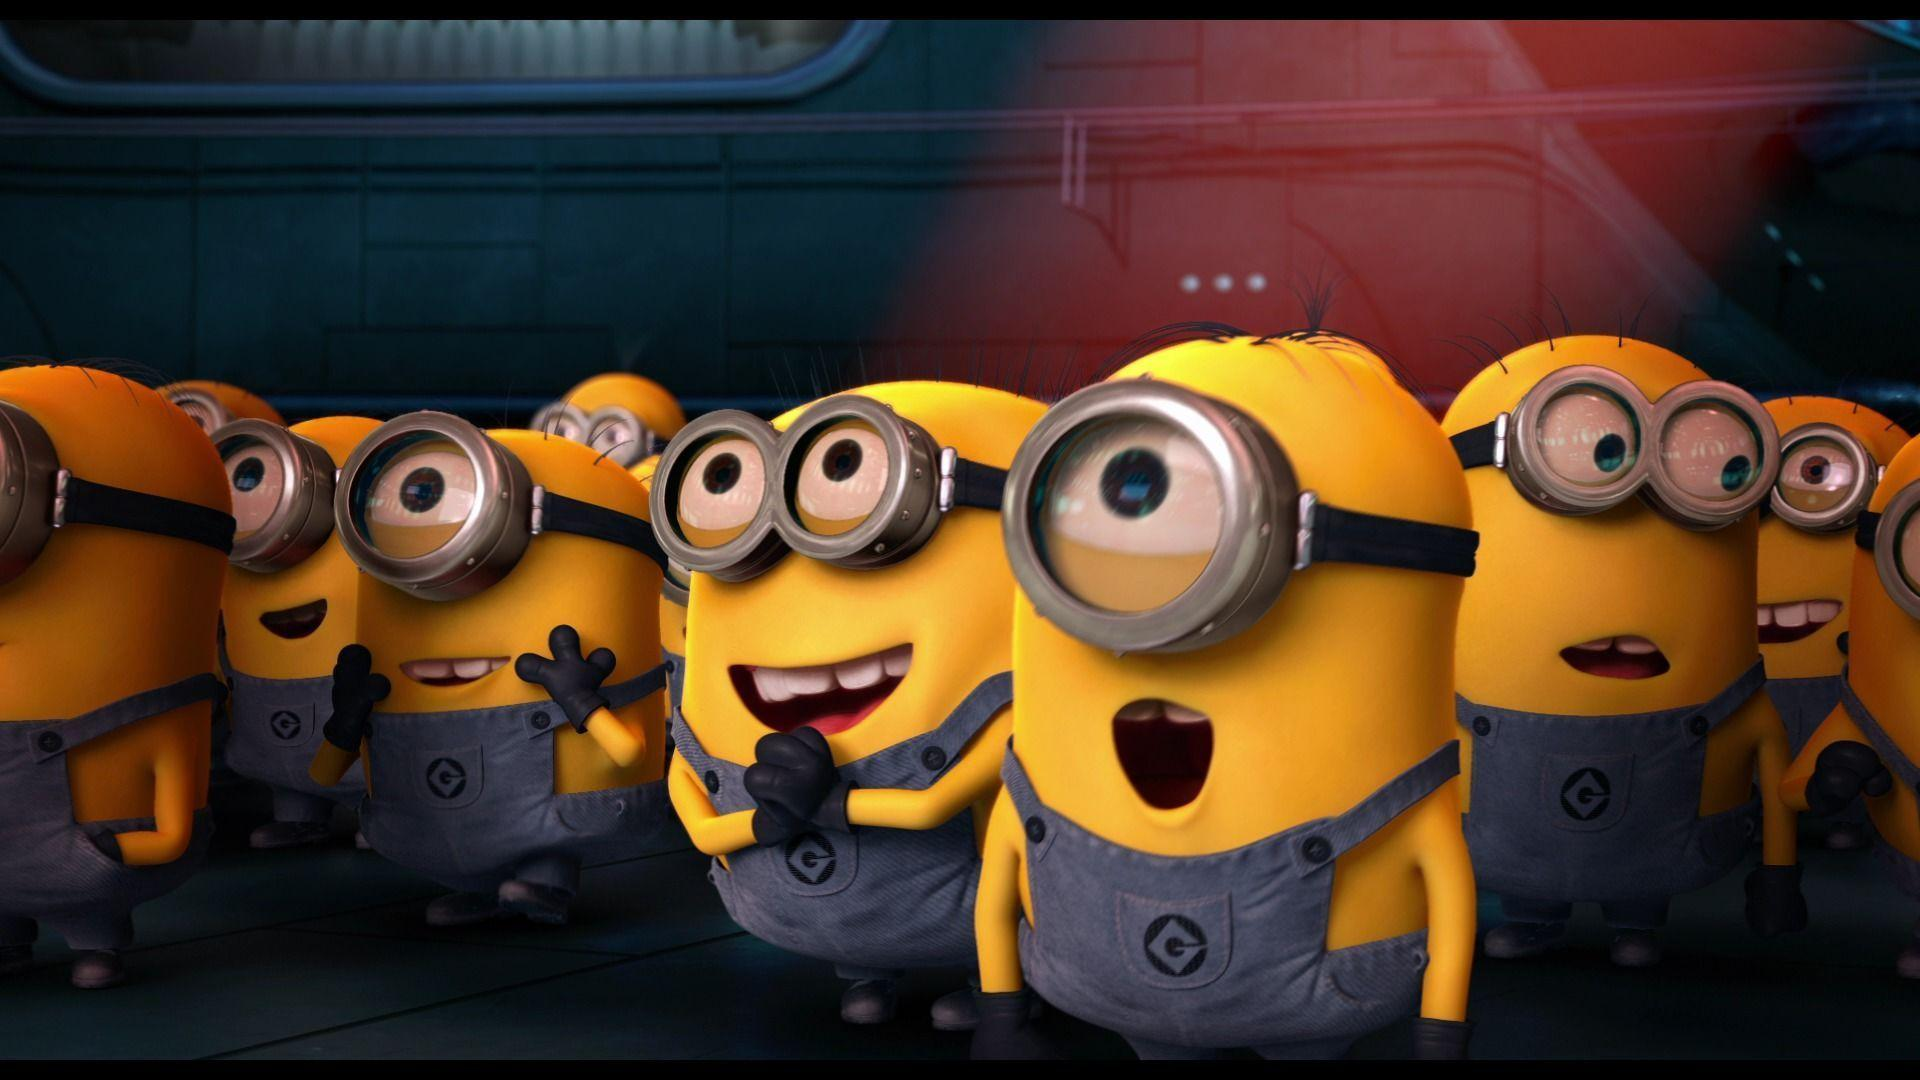 Despicable Me - Minions Wallpaper #